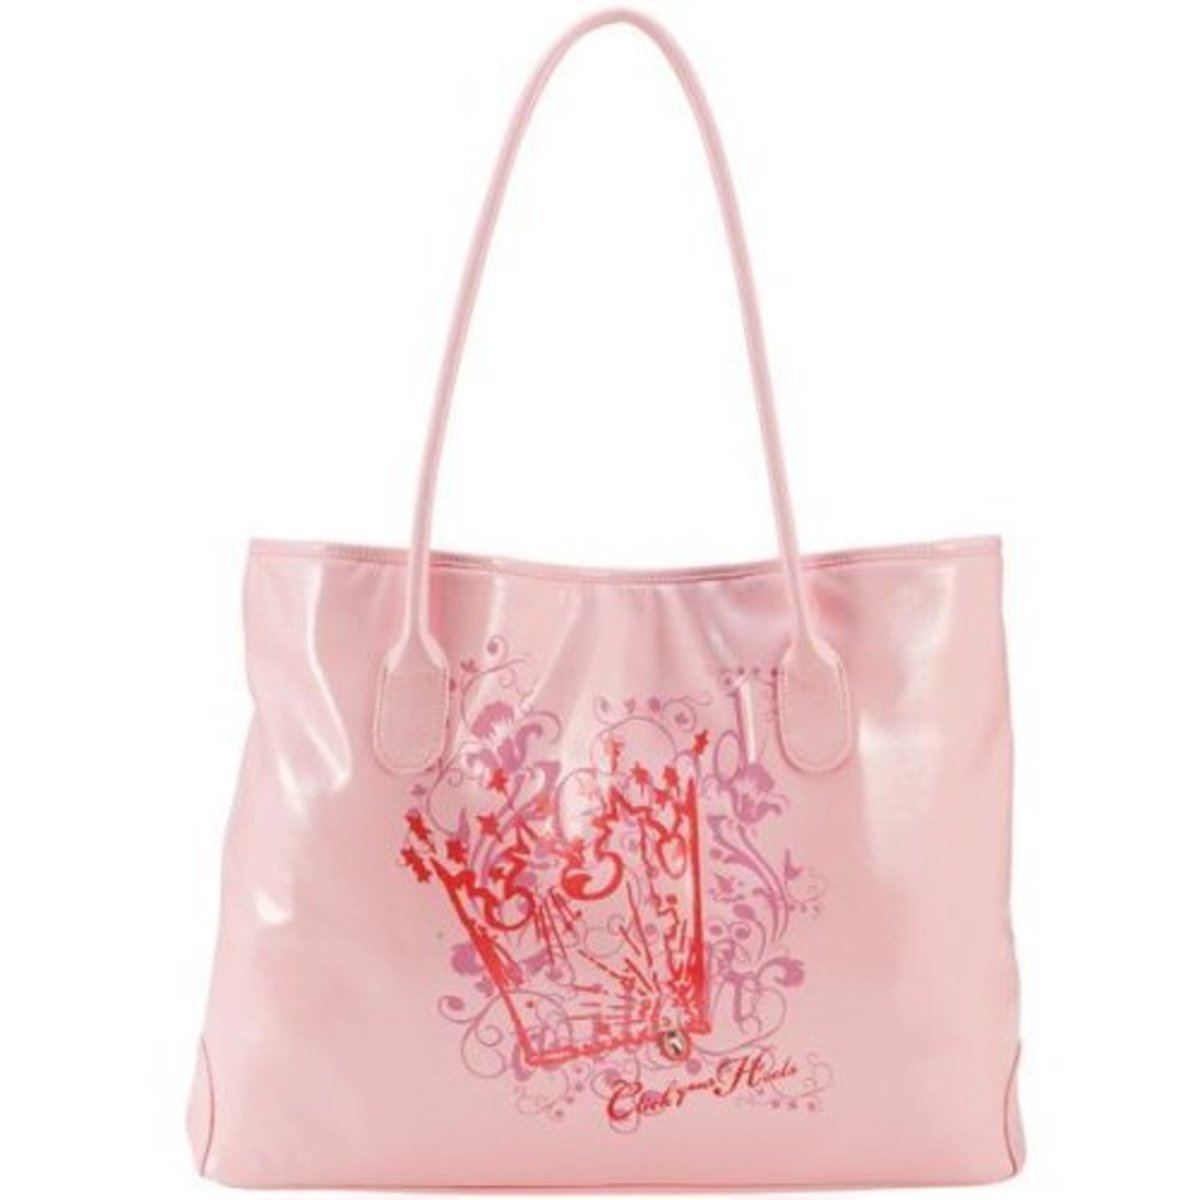 the-wizard-of-oz-purses-and-tote-bags